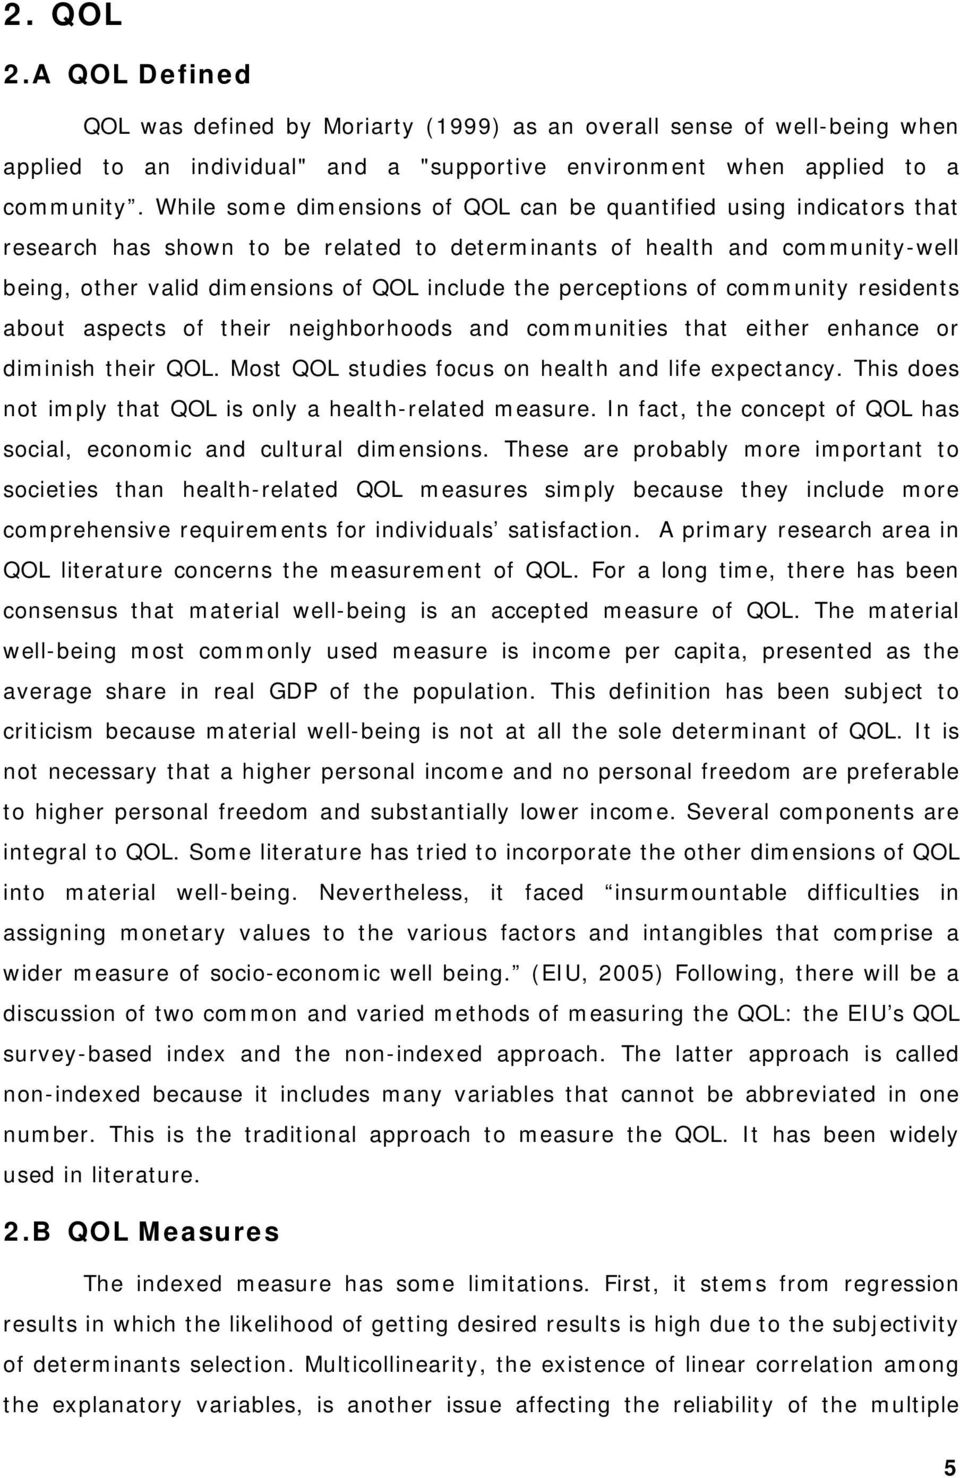 perceptions of community residents about aspects of their neighborhoods and communities that either enhance or diminish their QOL. Most QOL studies focus on health and life expectancy.